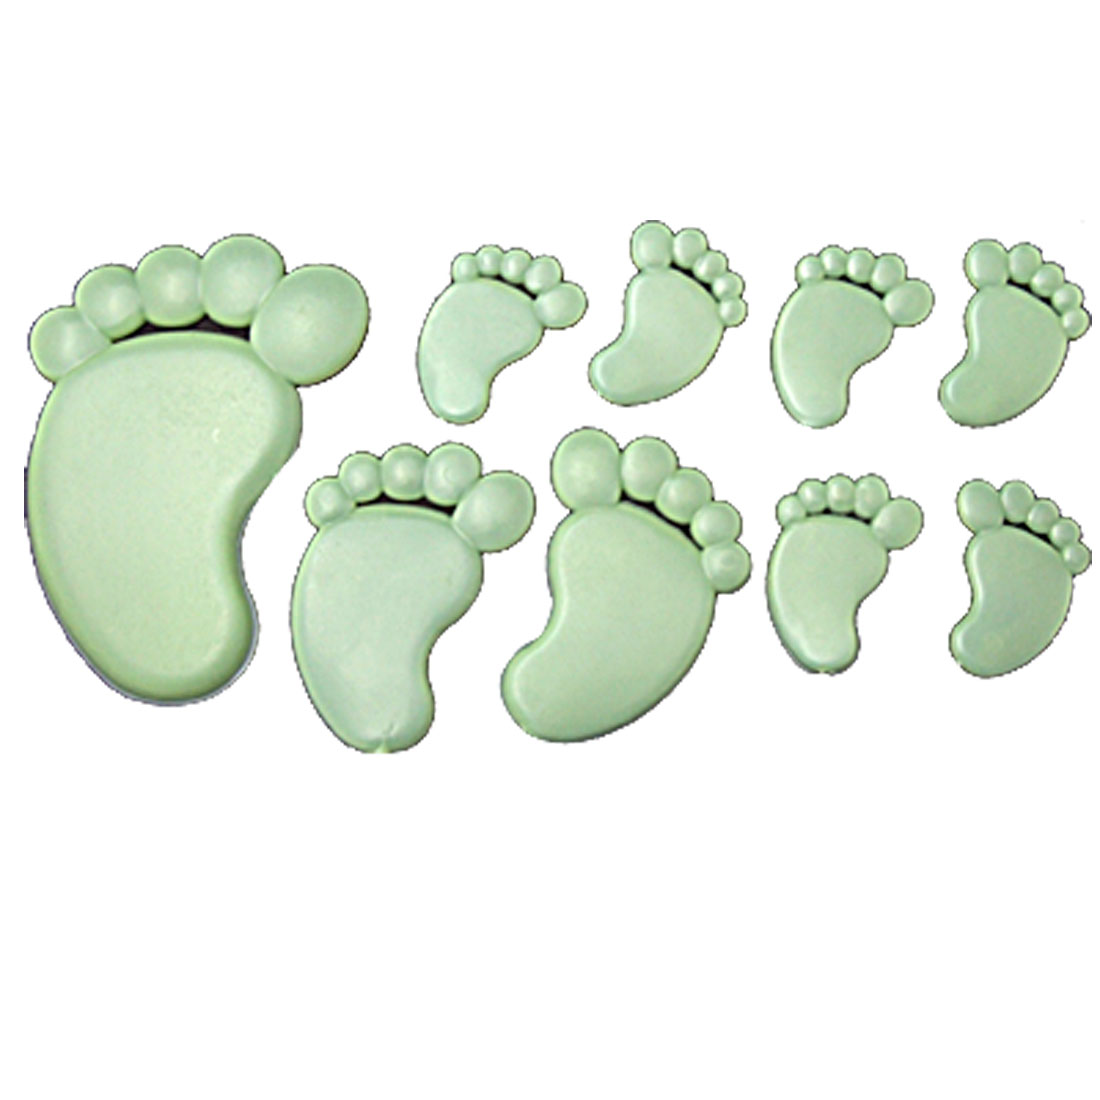 Footprint Shape Glow In The Dark Wall Stickers Baby Room Kids Nursery 9 Pcs